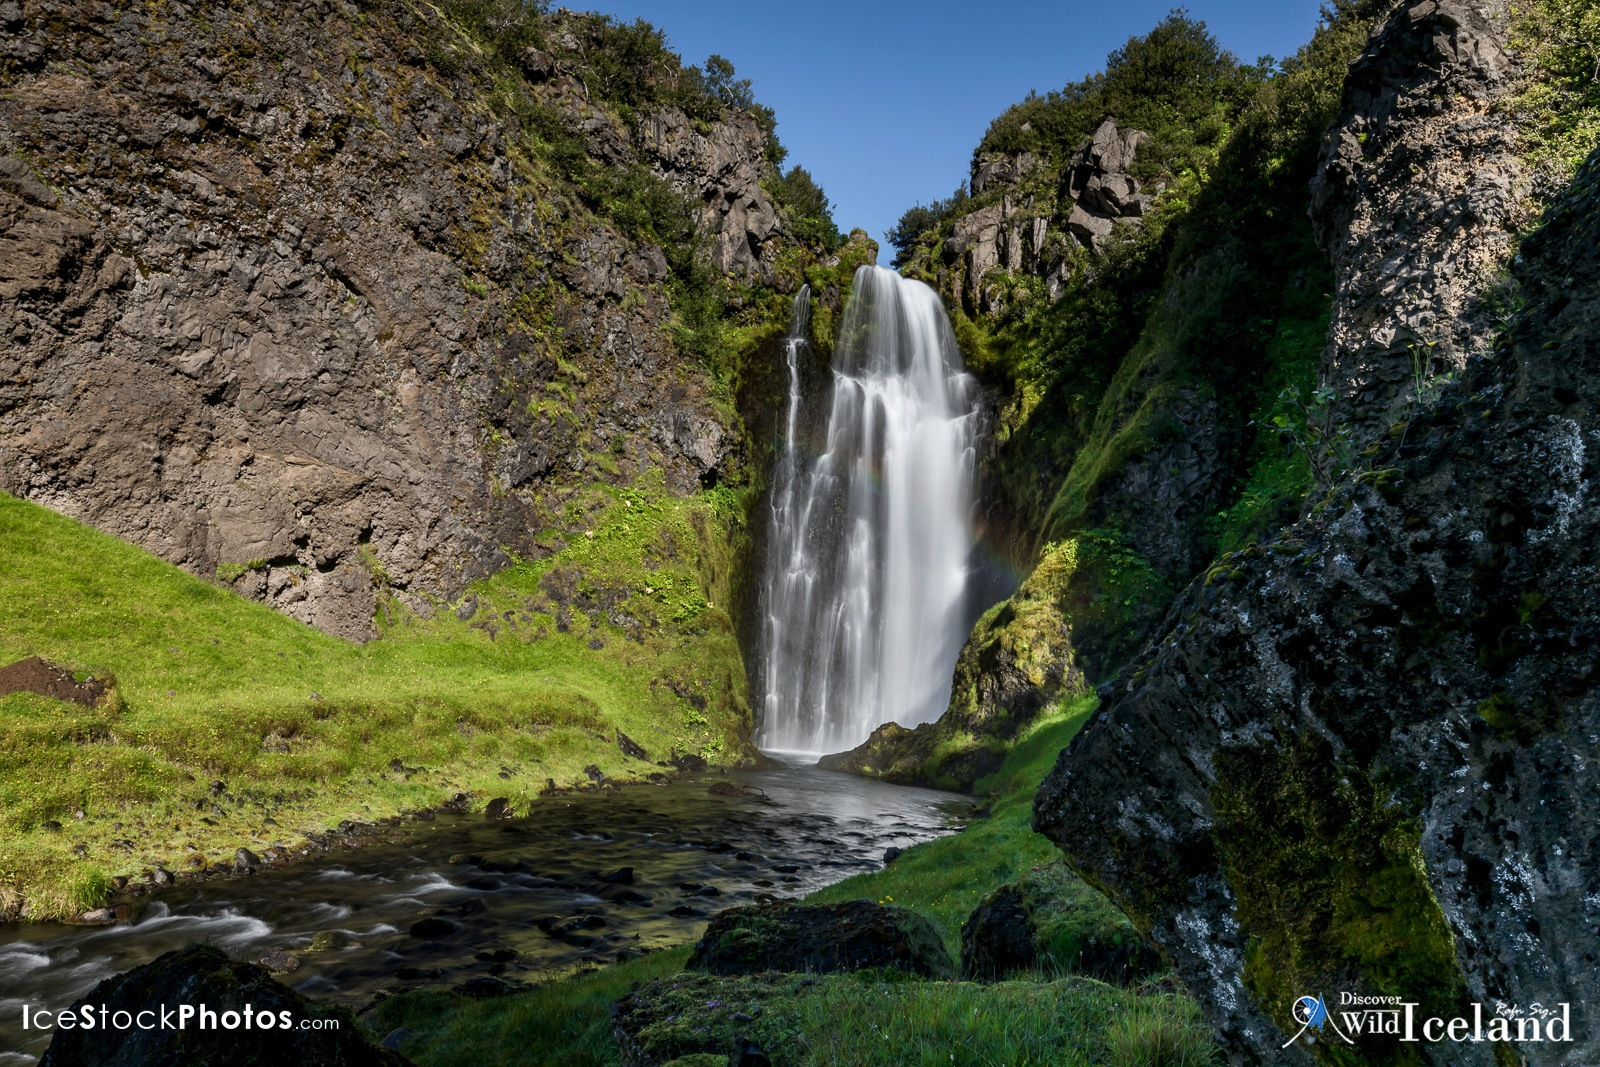 Discover Wild Iceland .is - Documenting this beautiful hidden waterfall in Iceland by Rafn Sig,-  @ Discover Wild Iceland.com